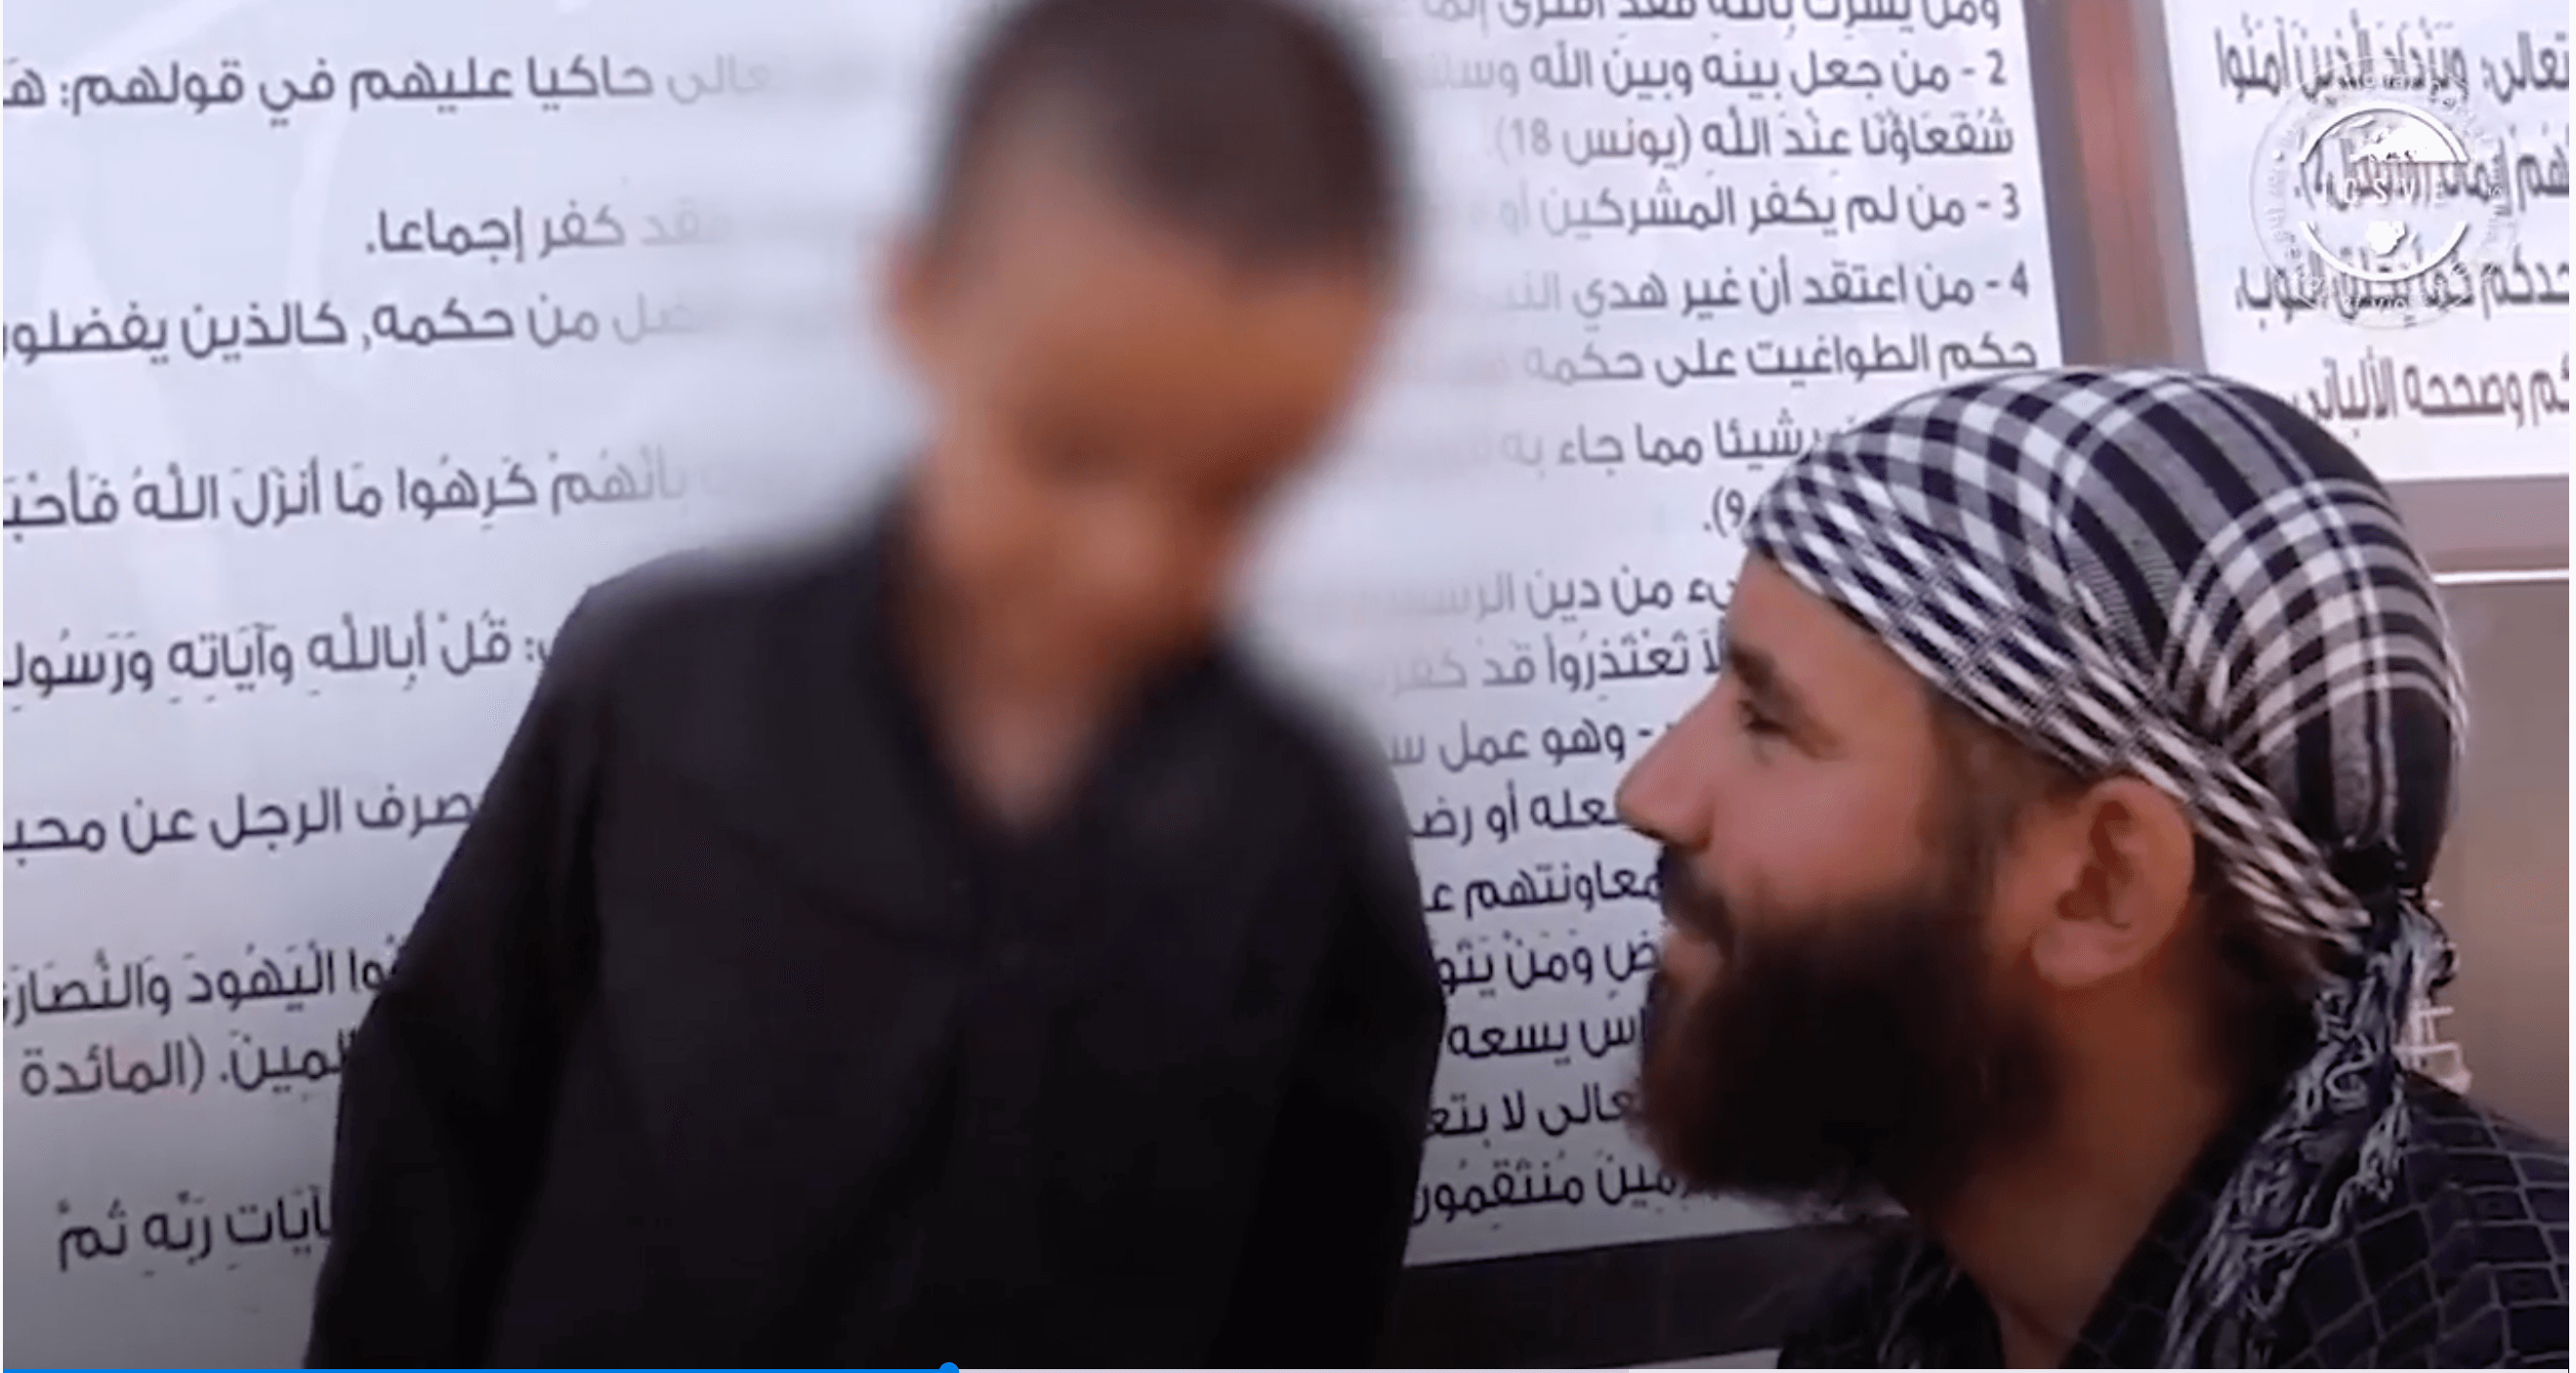 A Child Of The Islamic State